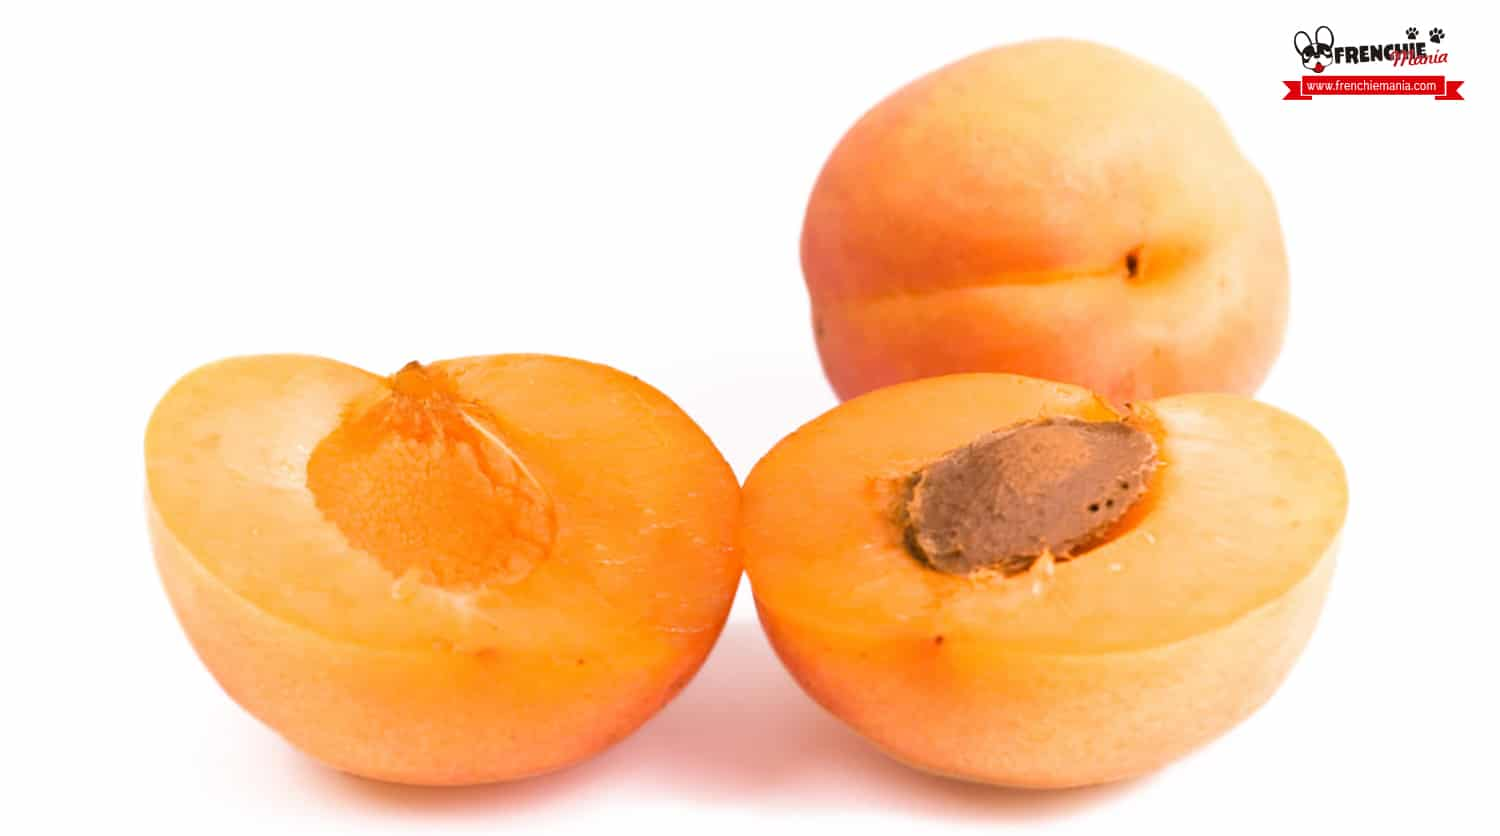 Cool Fruits Dogs Apricot Fruits Your French Bulldog Will Love To Eat Can Dogs Eat Green Apricots Can Dogs Eat Fresh Apricots bark post Can Dogs Eat Apricots